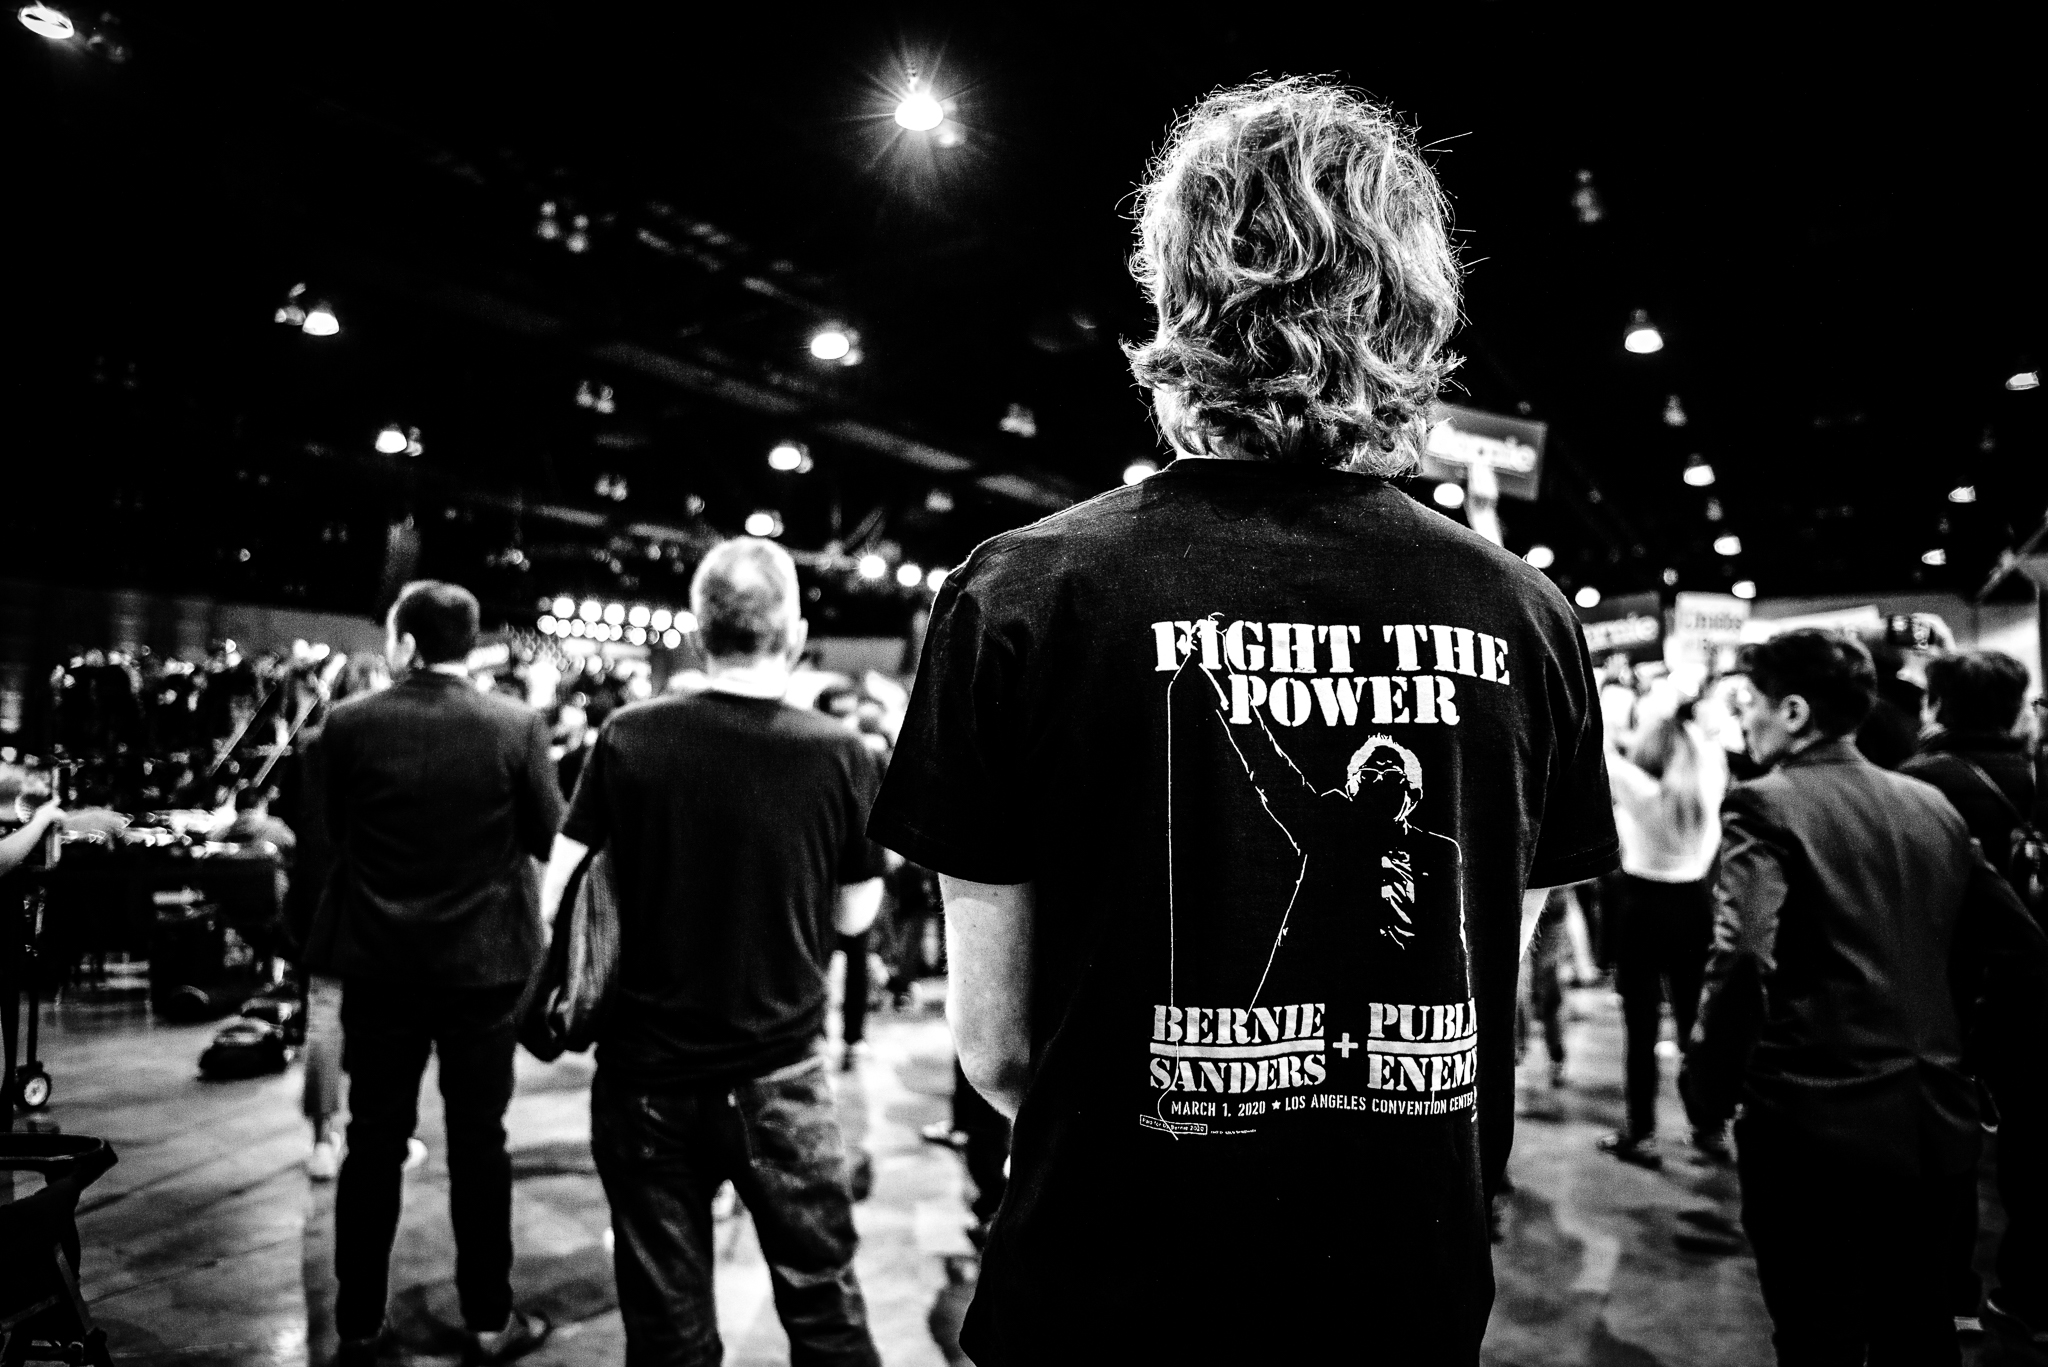 Bernie Supporters gather to hear a performance by Chuck D and Public Enemy Radio in Los Angeles California. March 1, 2020. Photo: Lance Monotone.